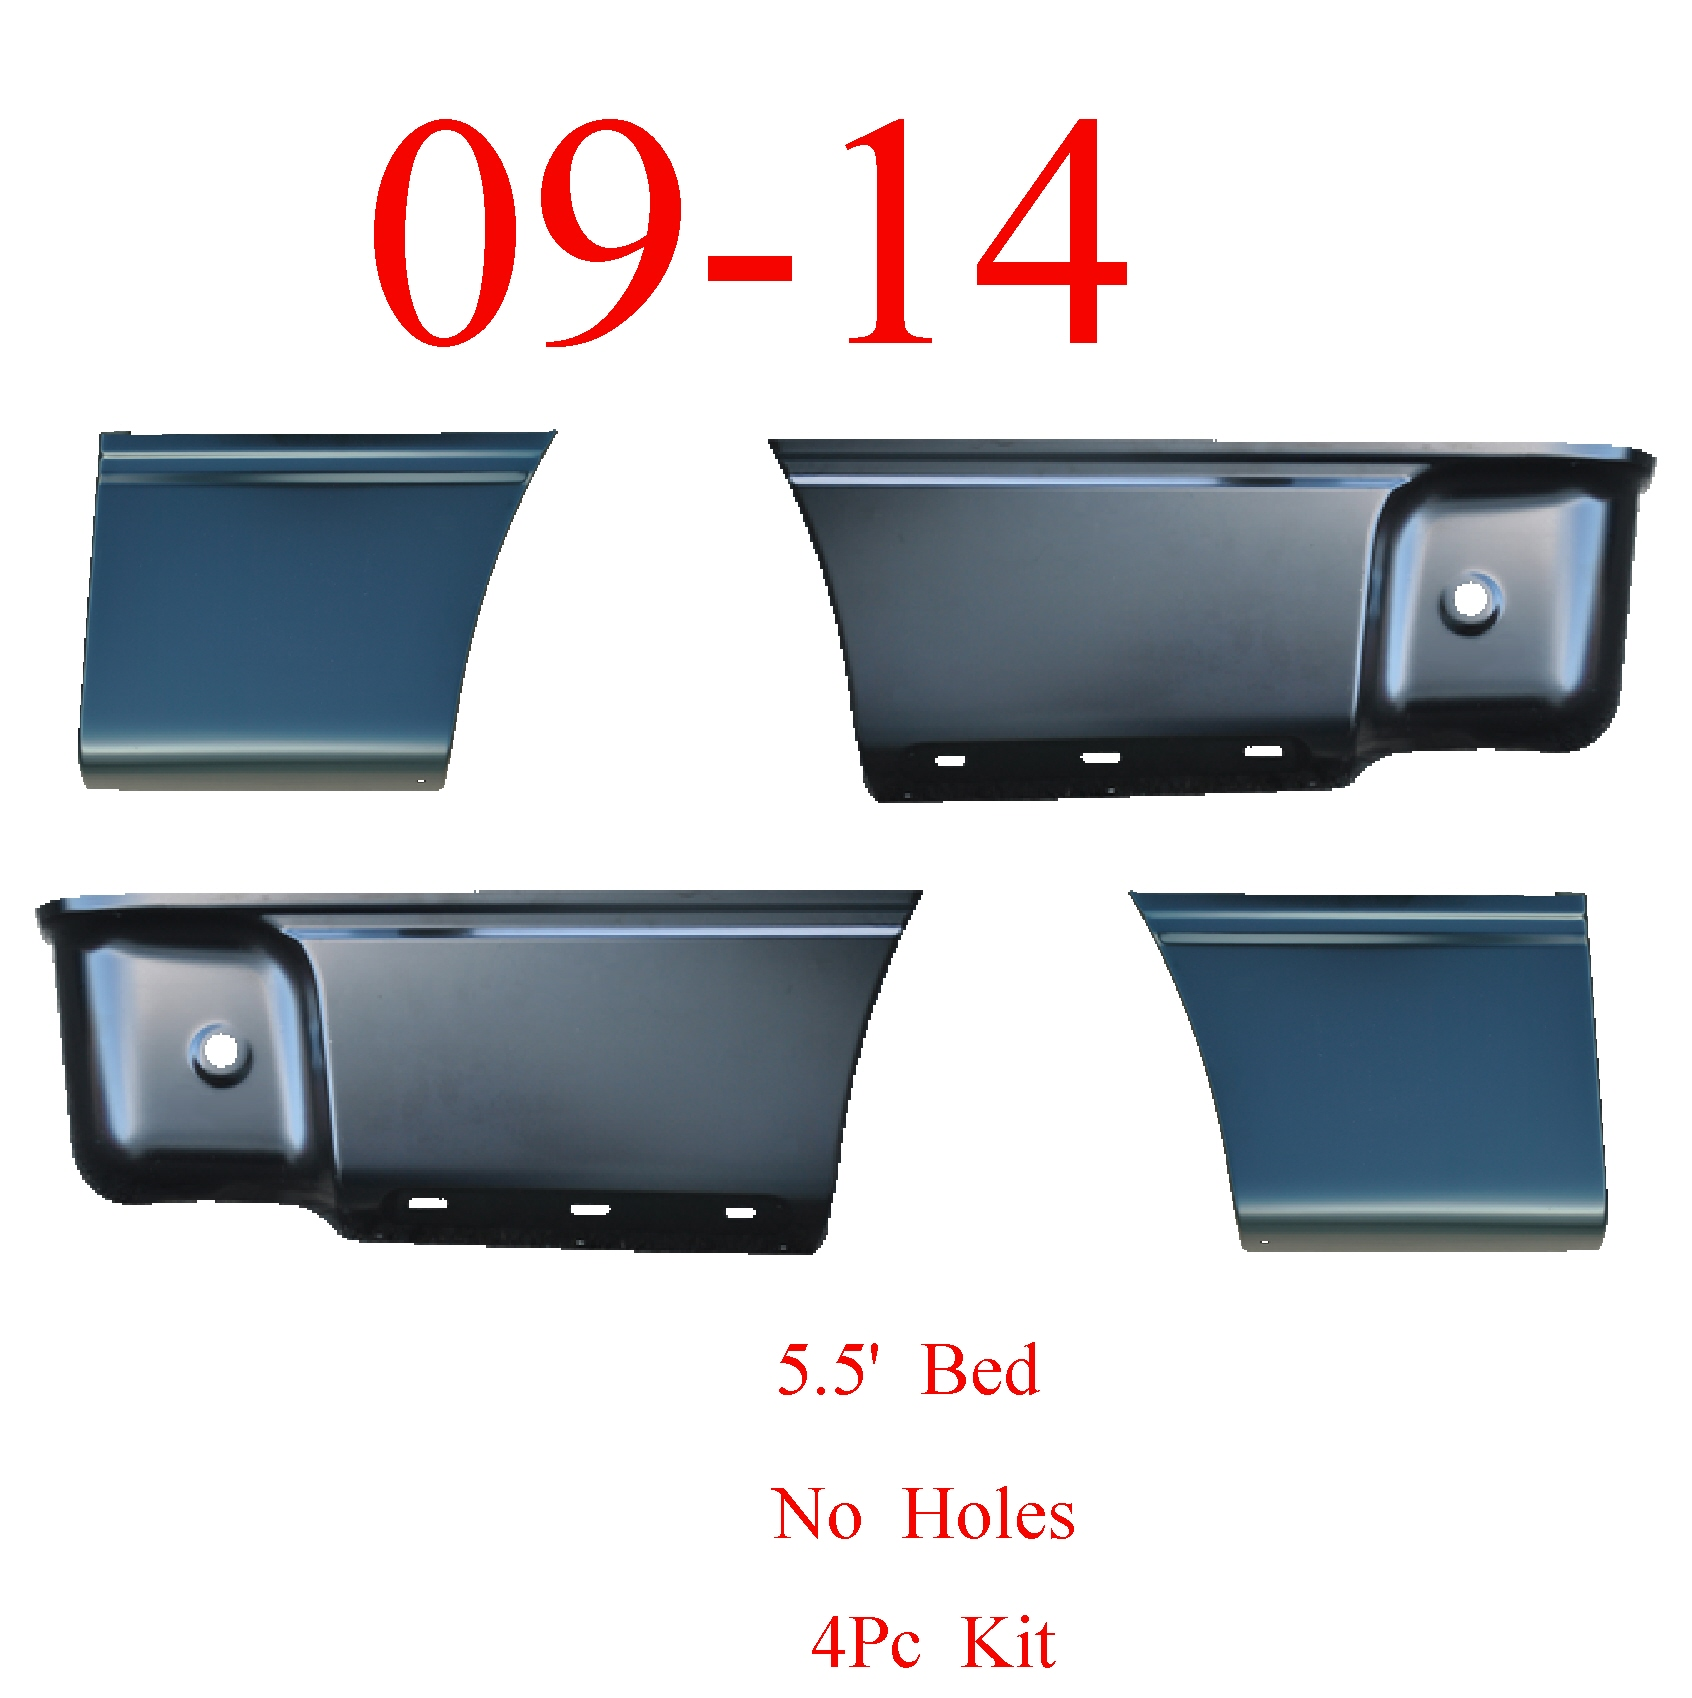 04 08 F150 Left Front 5.5/' Lower Bed Patch Panel Without Holes 1988-135